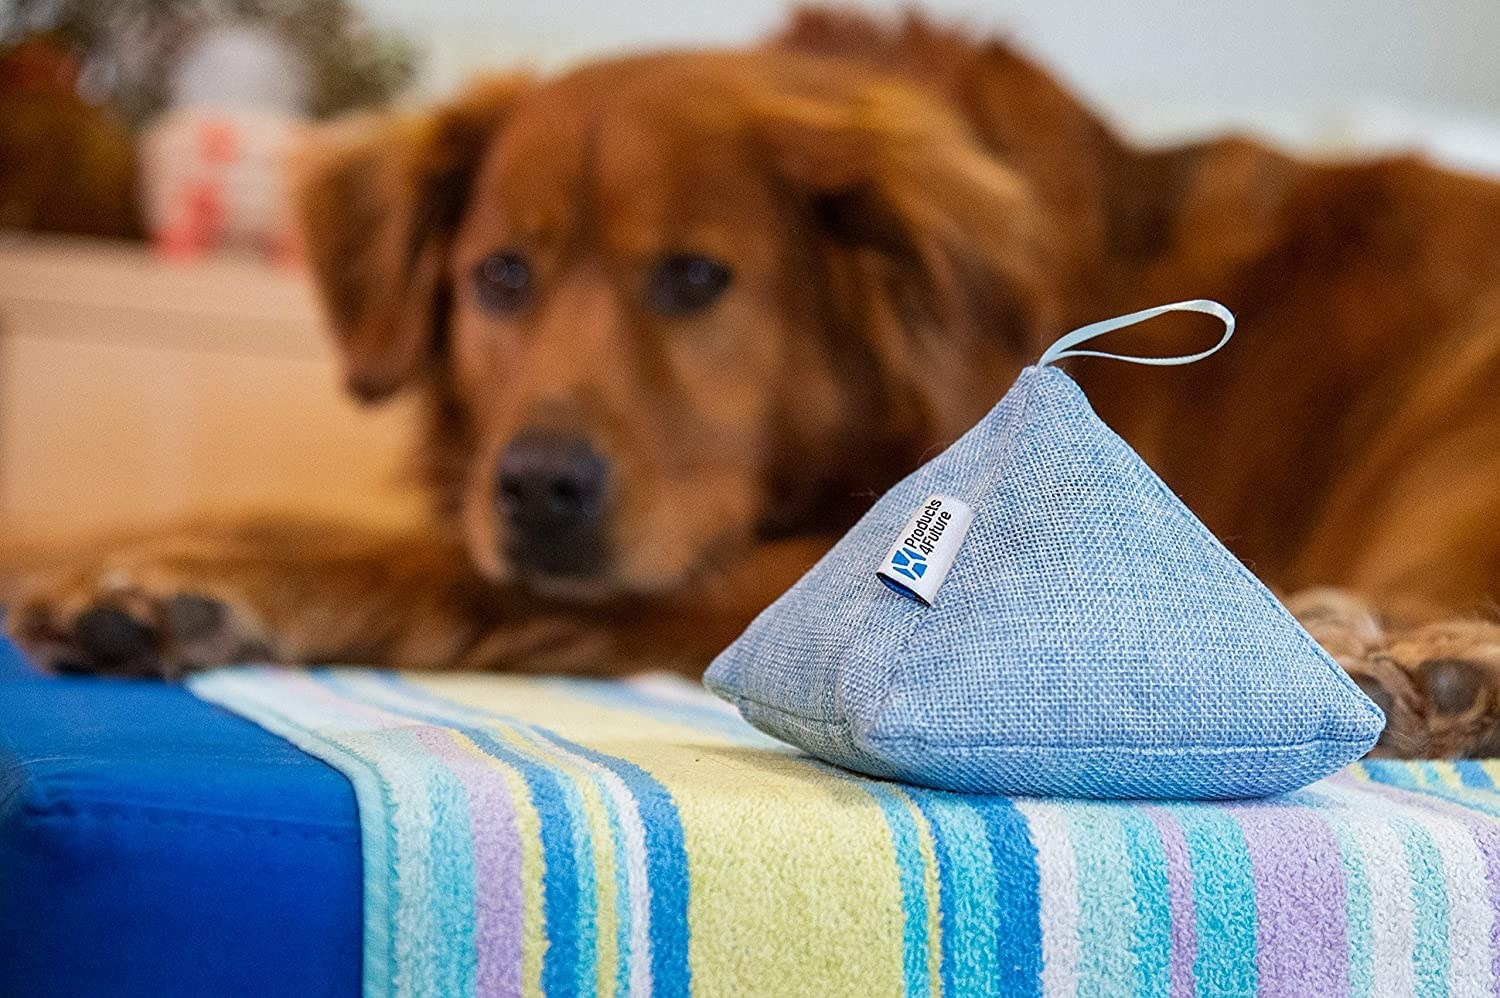 A small pyramid-shaped deodorizing bag perched on a couch in front of a dog